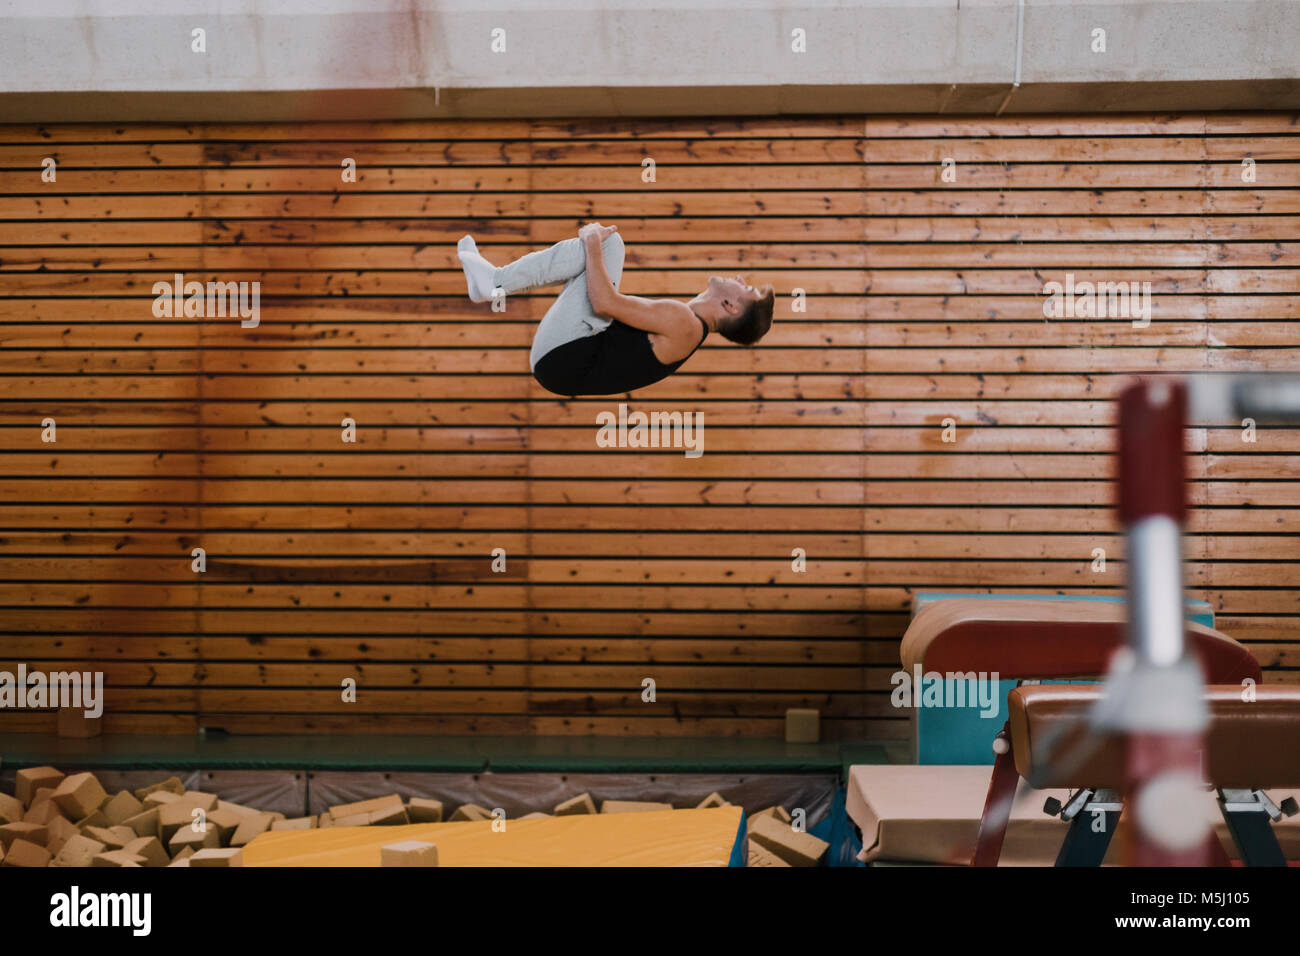 Gymnast exercising at vaulting table in gym - Stock Image